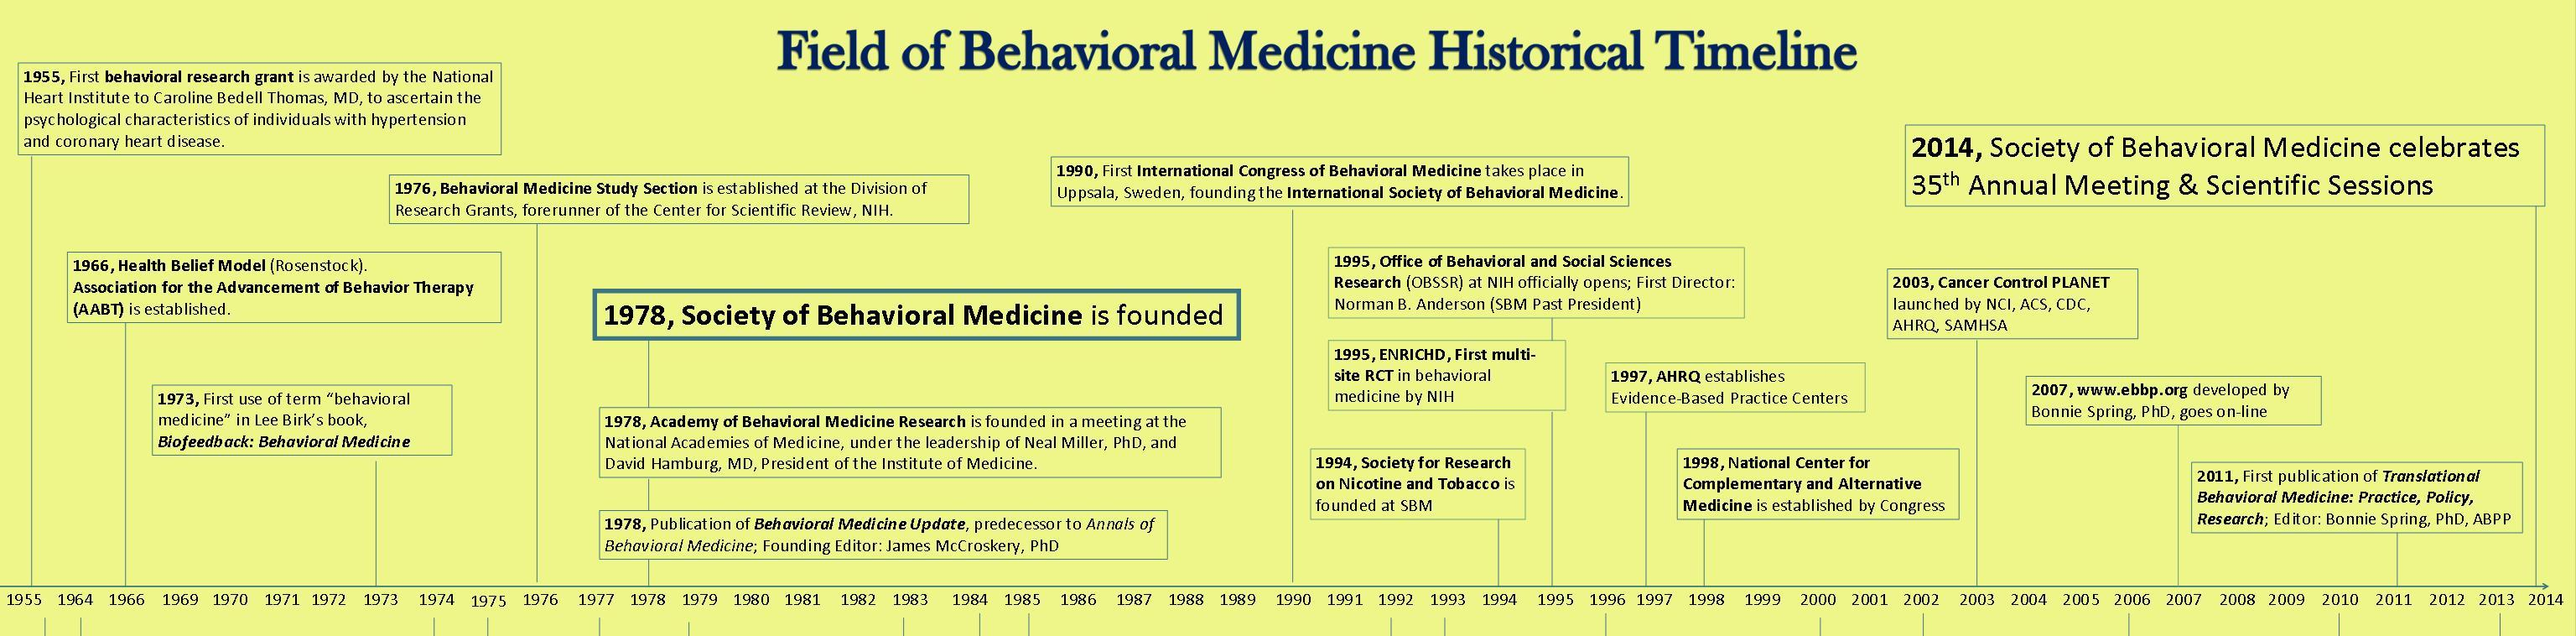 Field of Behavioral Medicine Historical Timeline Special thanks to Marc D.  Gellman, PhD, and Sherry L. Pagoto, PhD, for their work on this timeline.